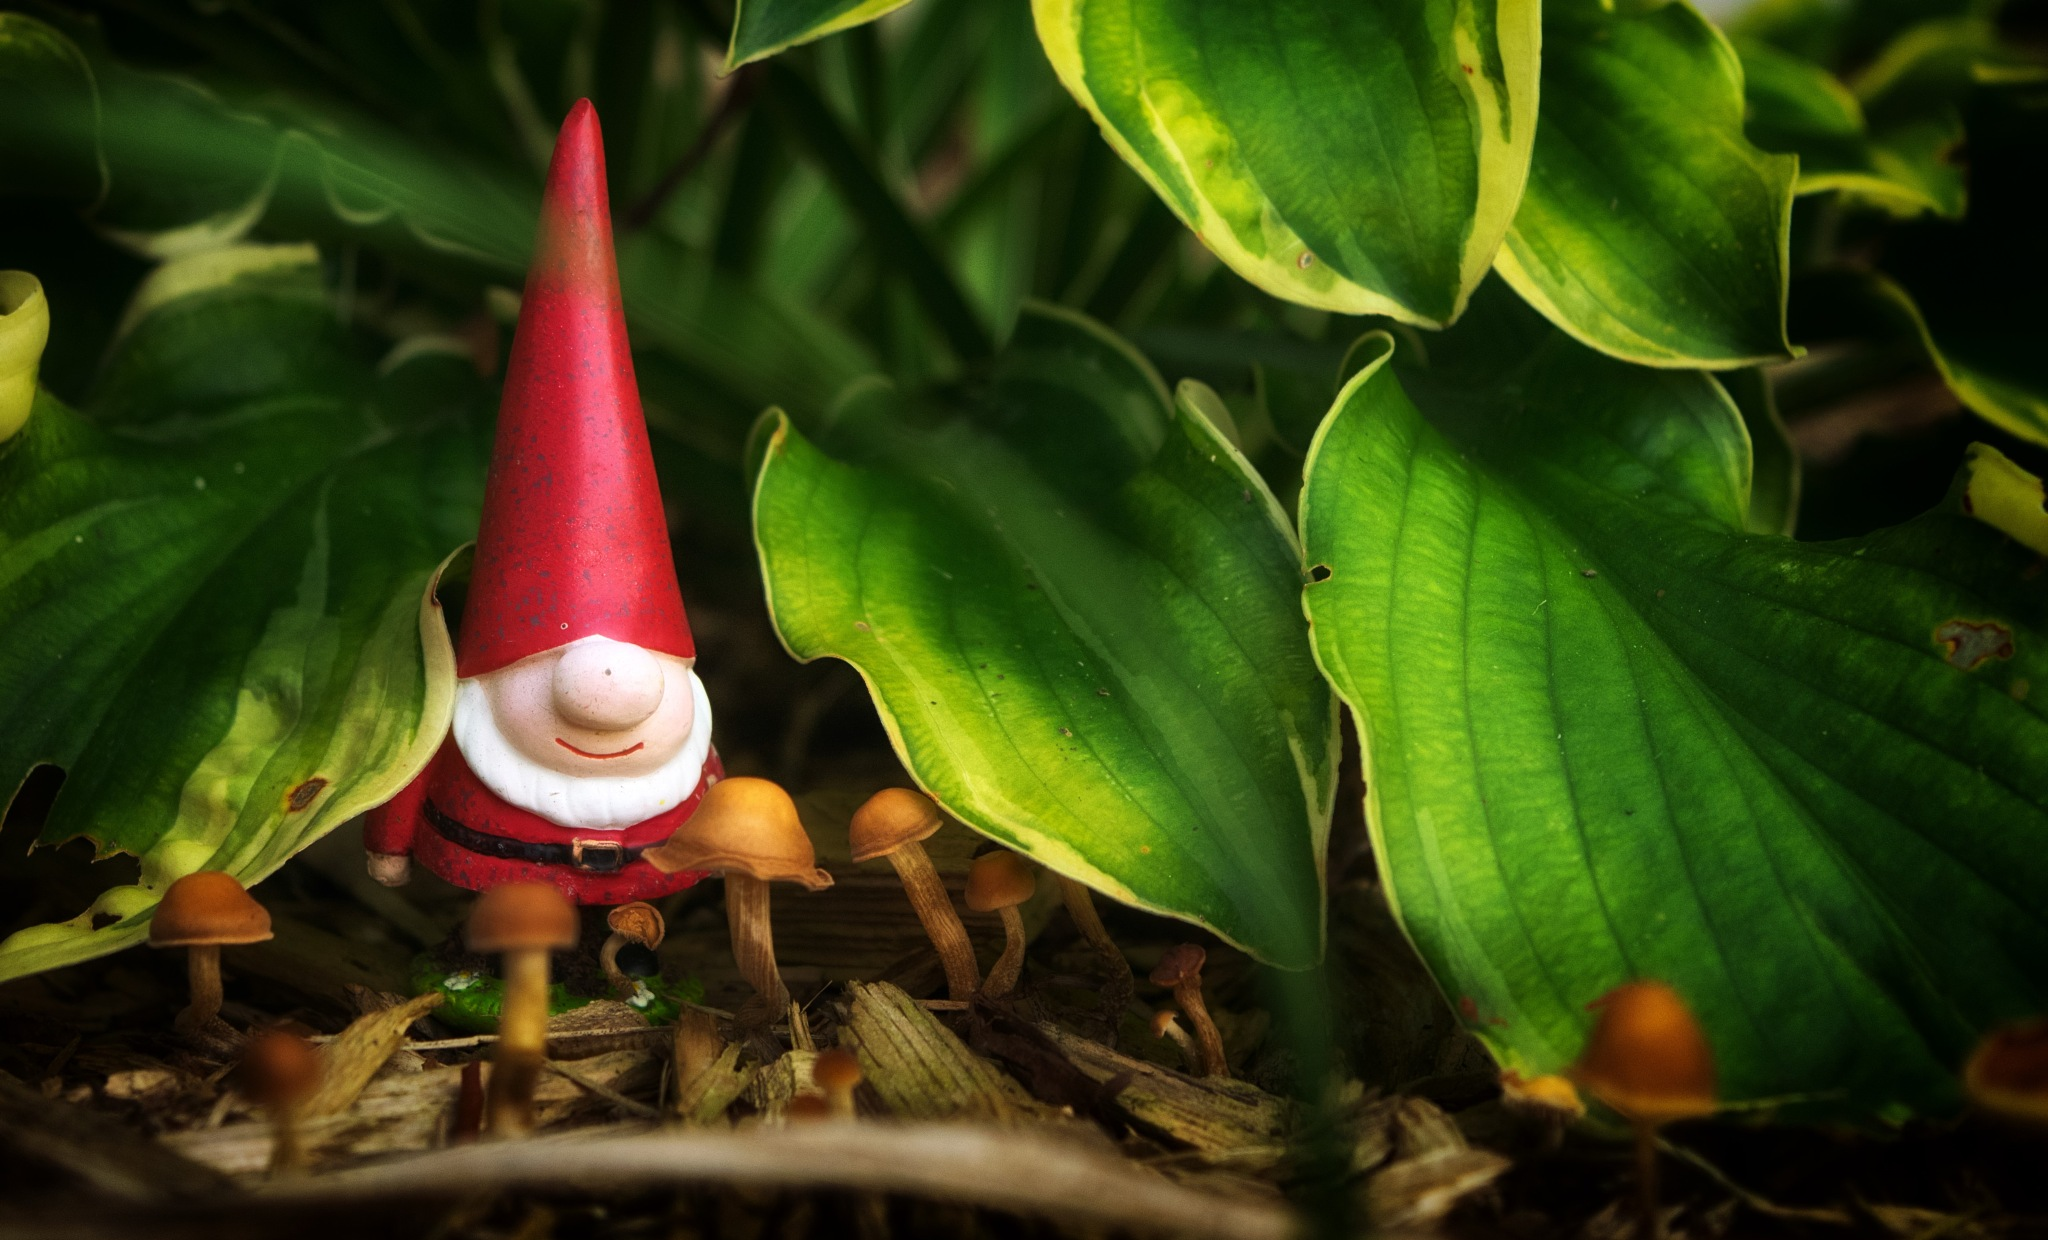 Garden Gnome by rick.moss.654